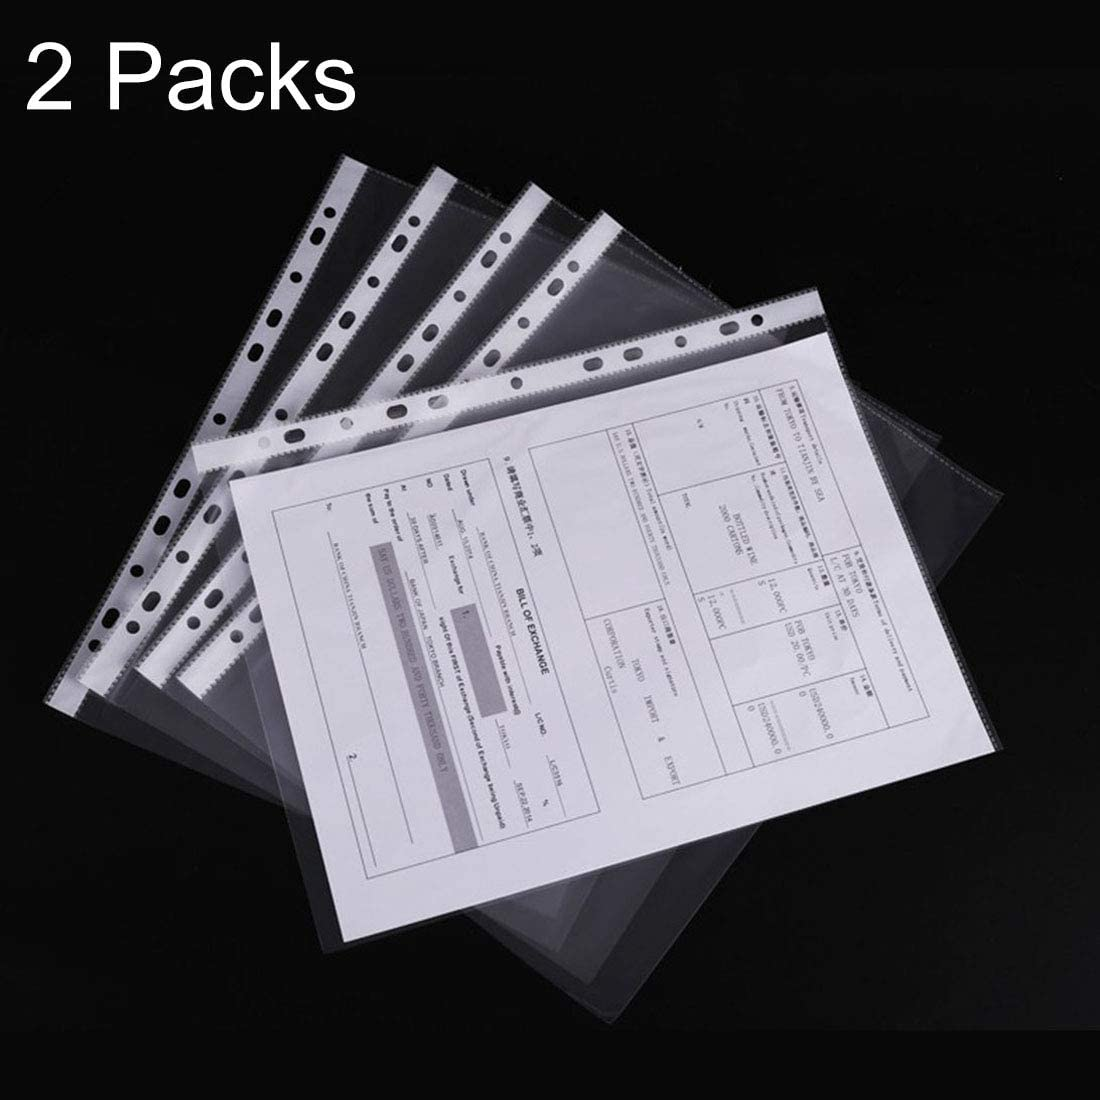 YINZHI School Supply 2 Packs Office Transparent 11 Holes A4 File Bag Loose-Leaf File Protector, About 100 PCS/Pack